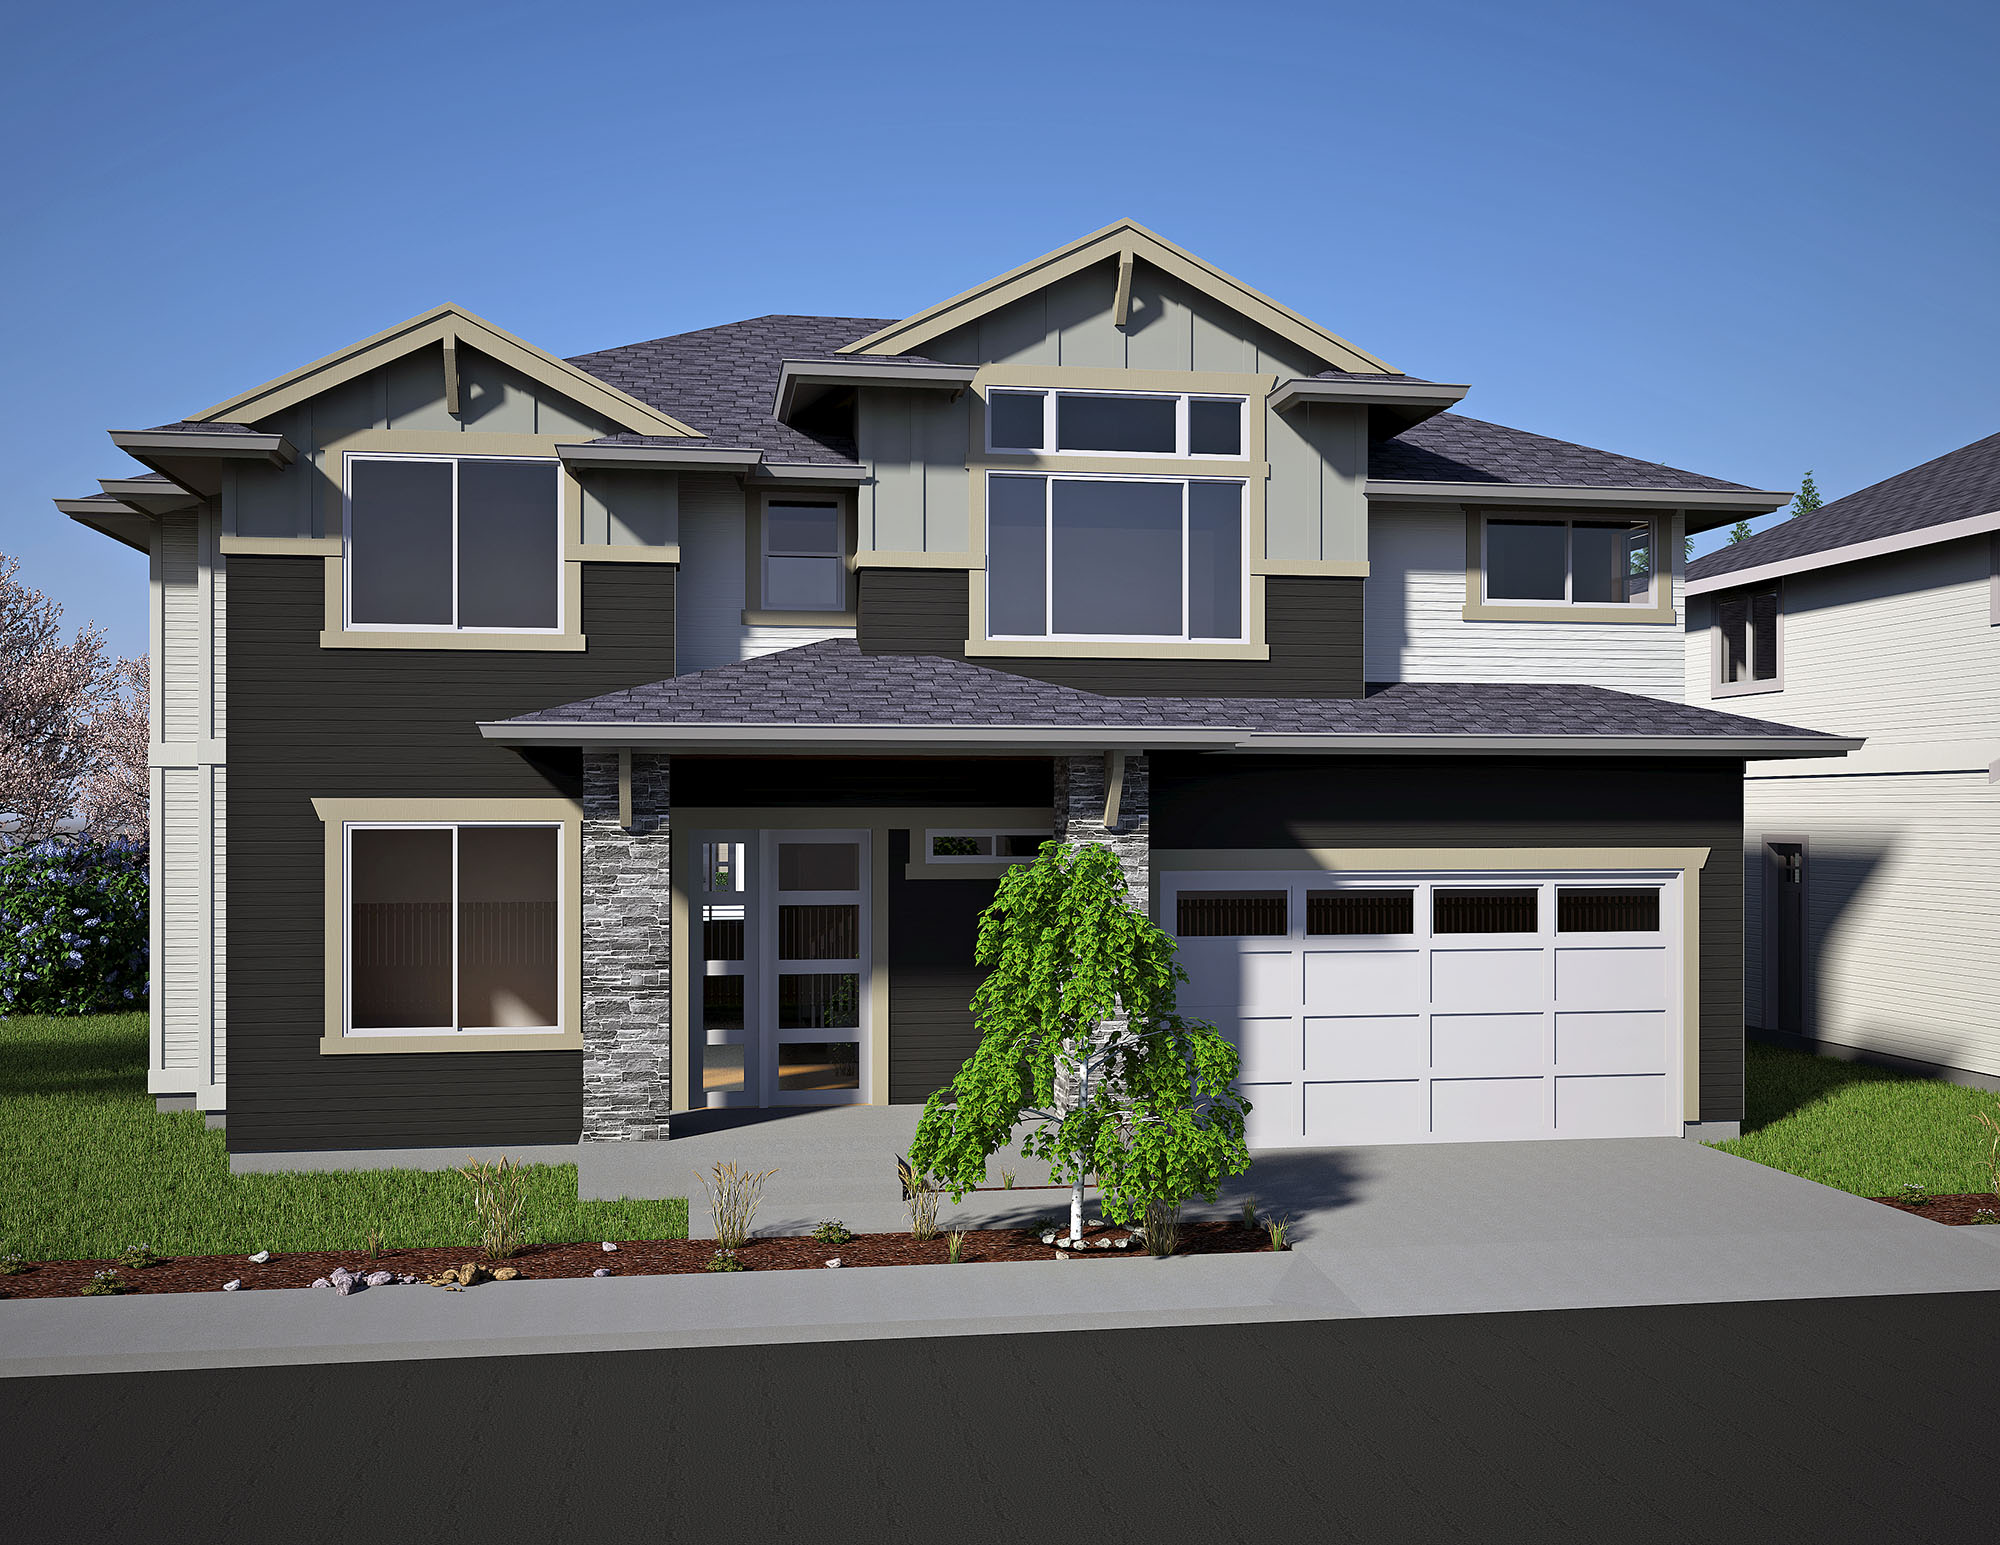 680 olympia ct ne lot 1 custom homes seattle bellevue for Olympia home builders